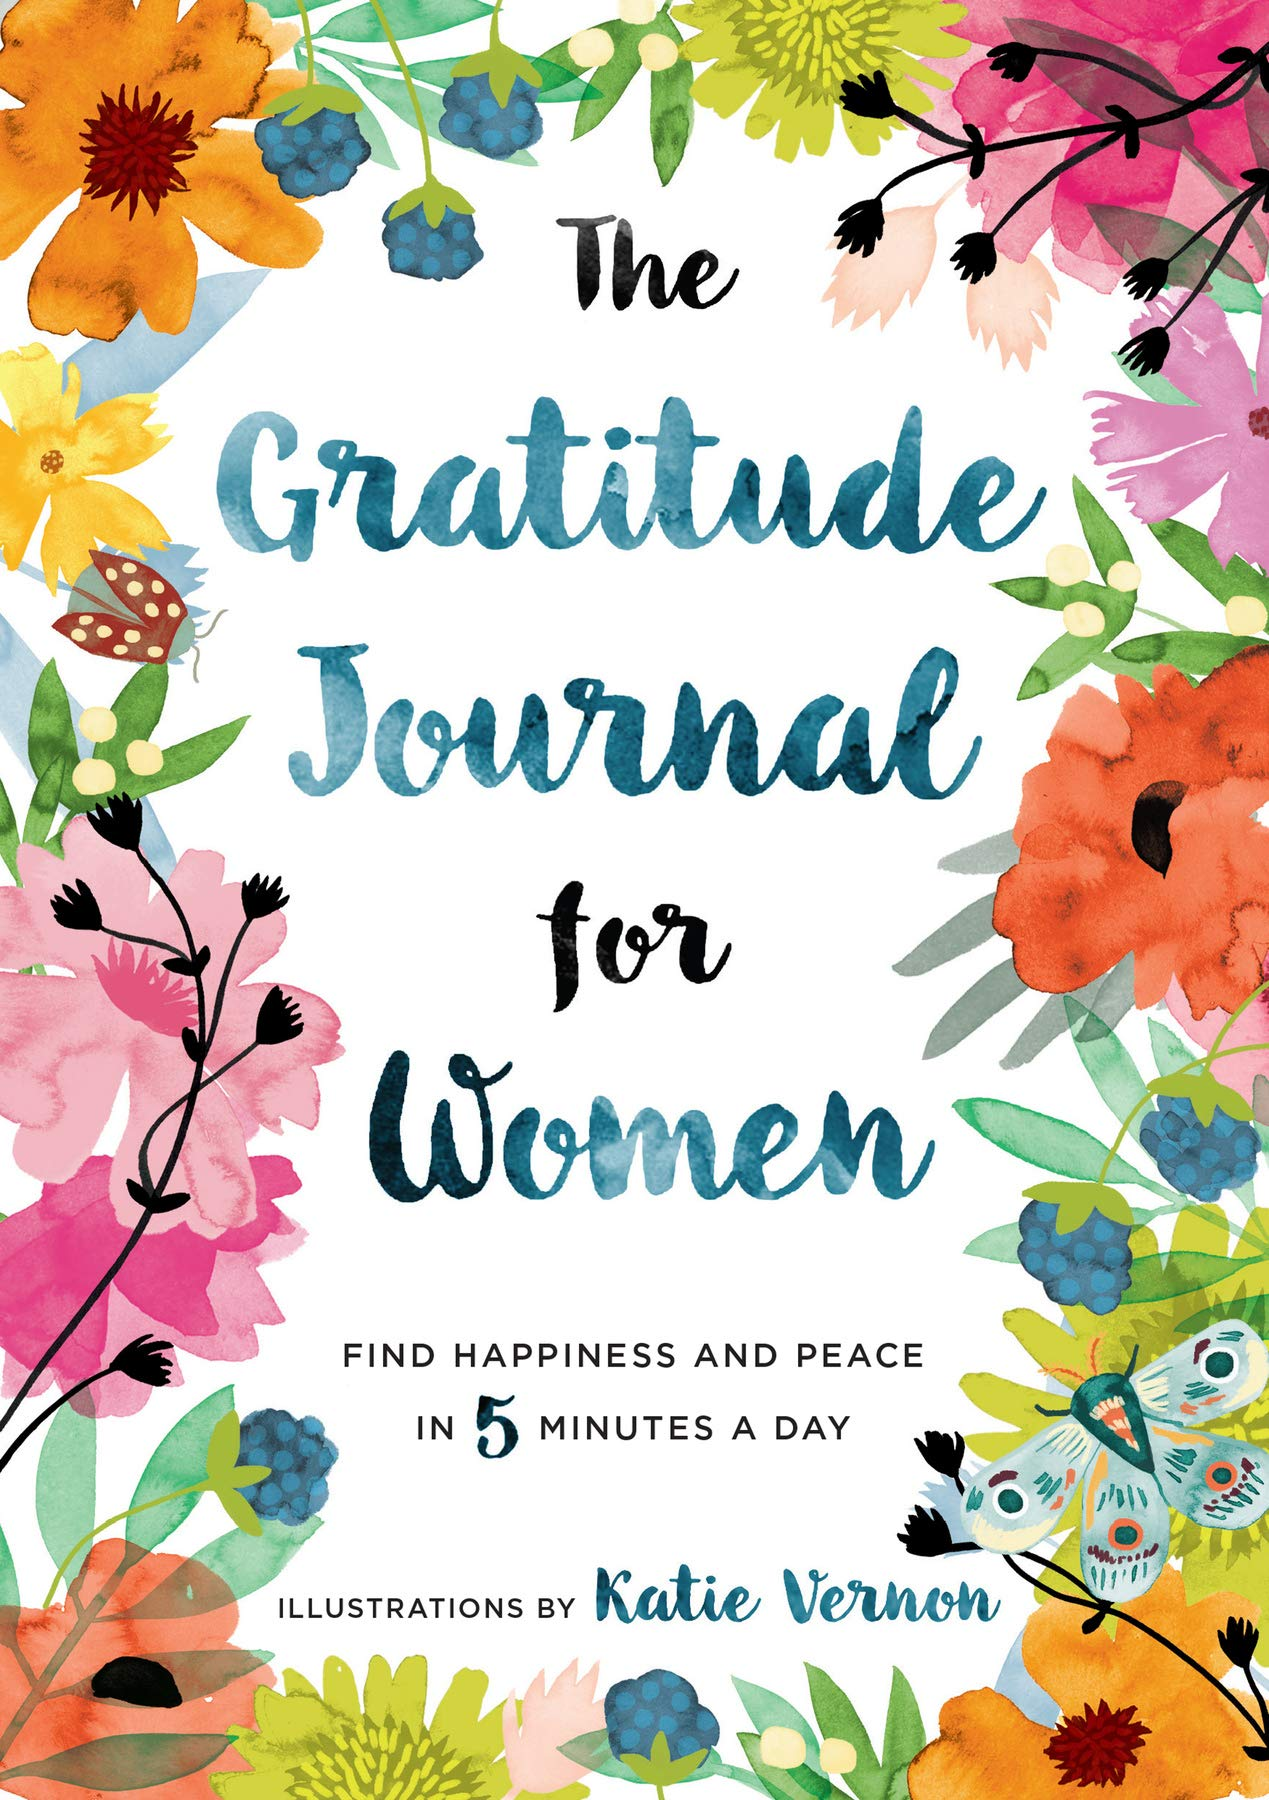 The Gratitude Journal For Women  Find Happiness And Peace In 5 Minutes A Day